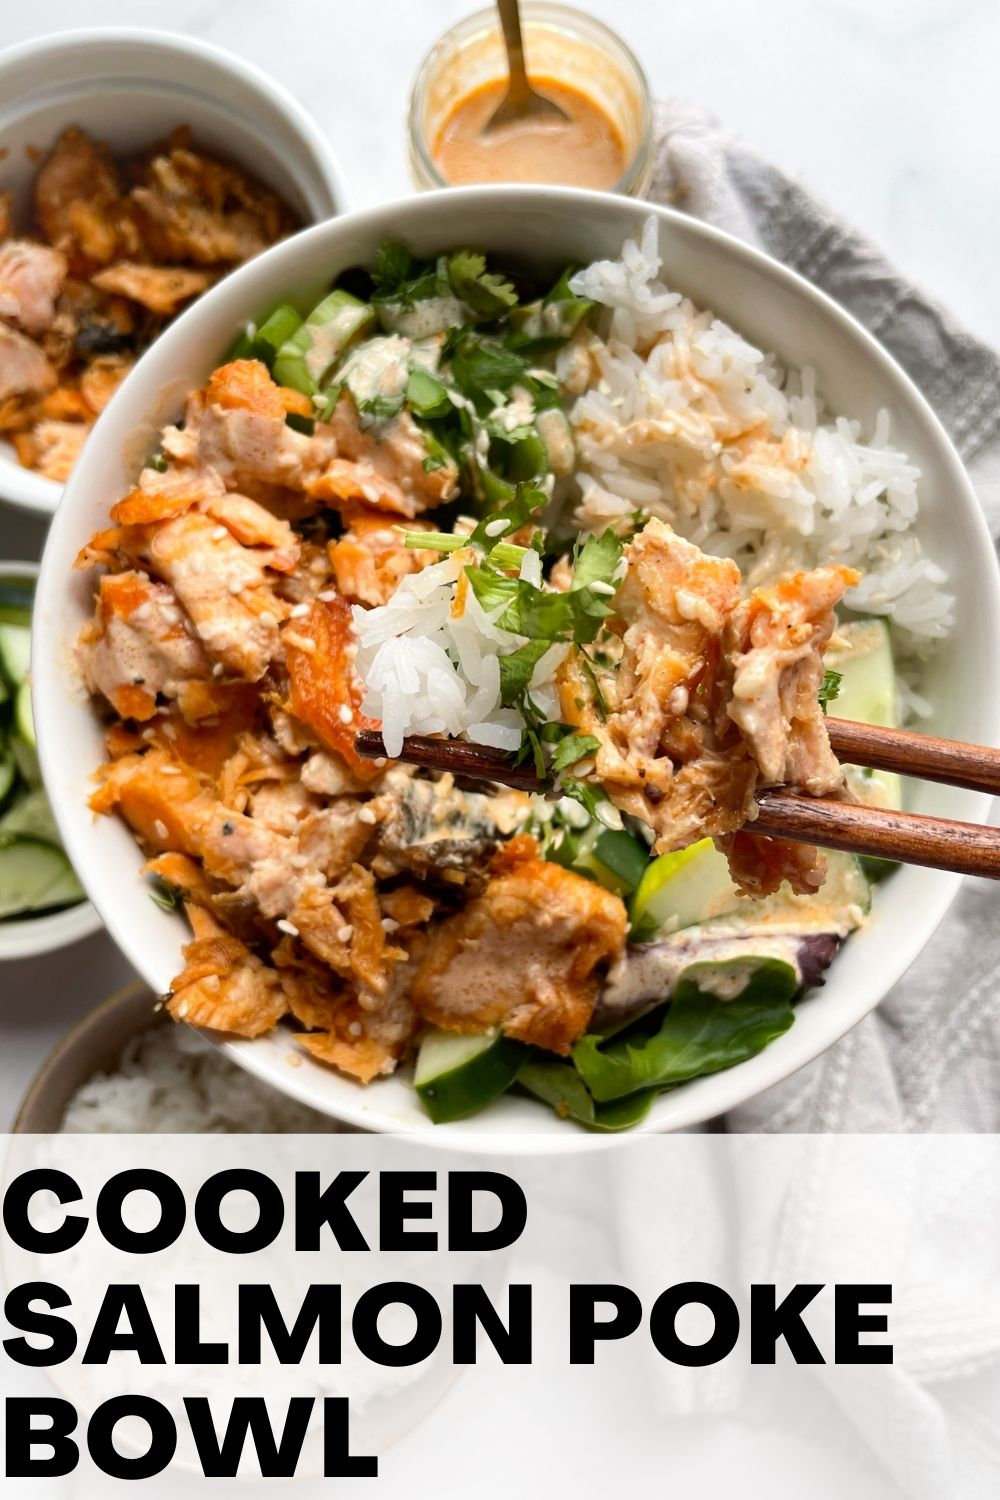 cooked salmon poke bowl with chopsticks